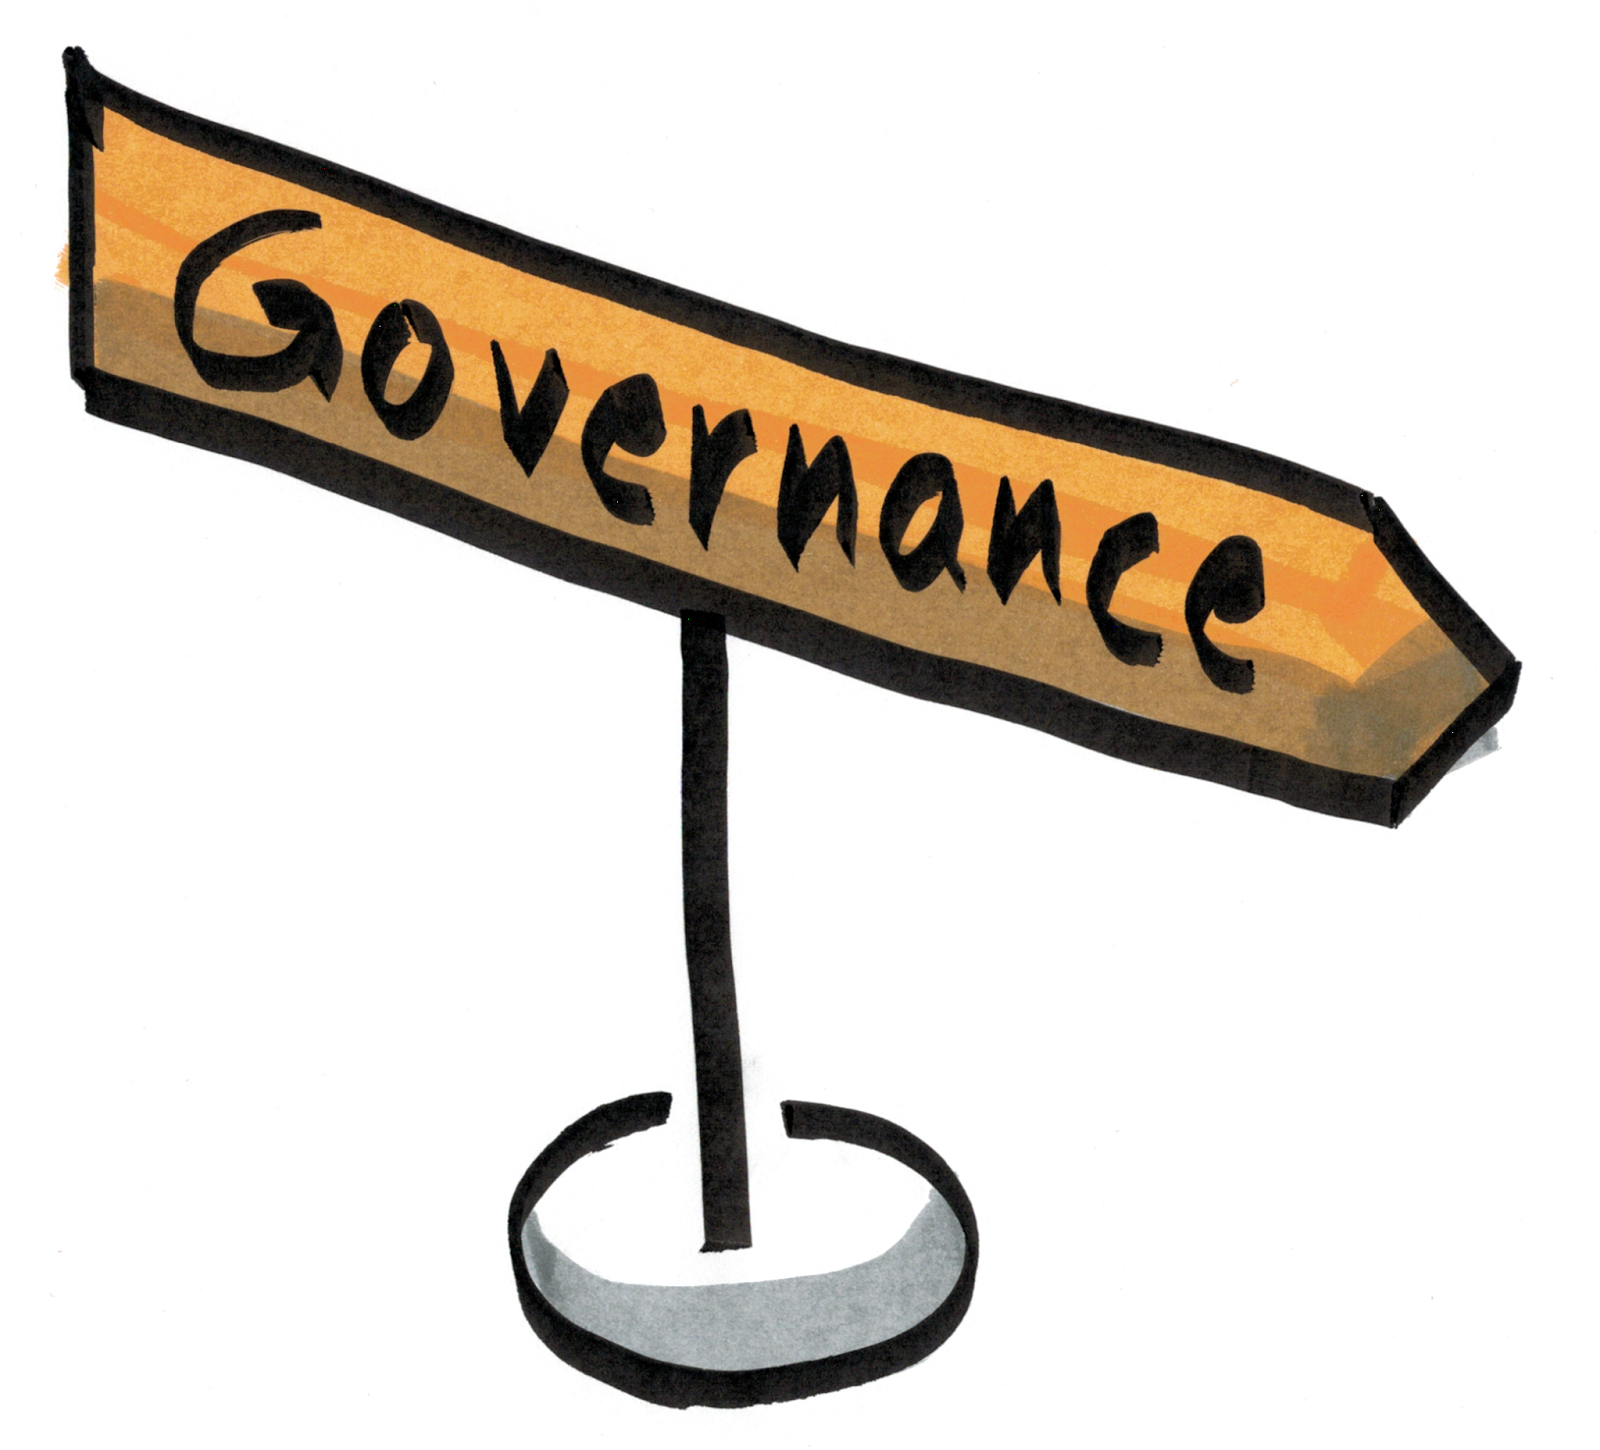 Agile Governance is guiding, not deciding